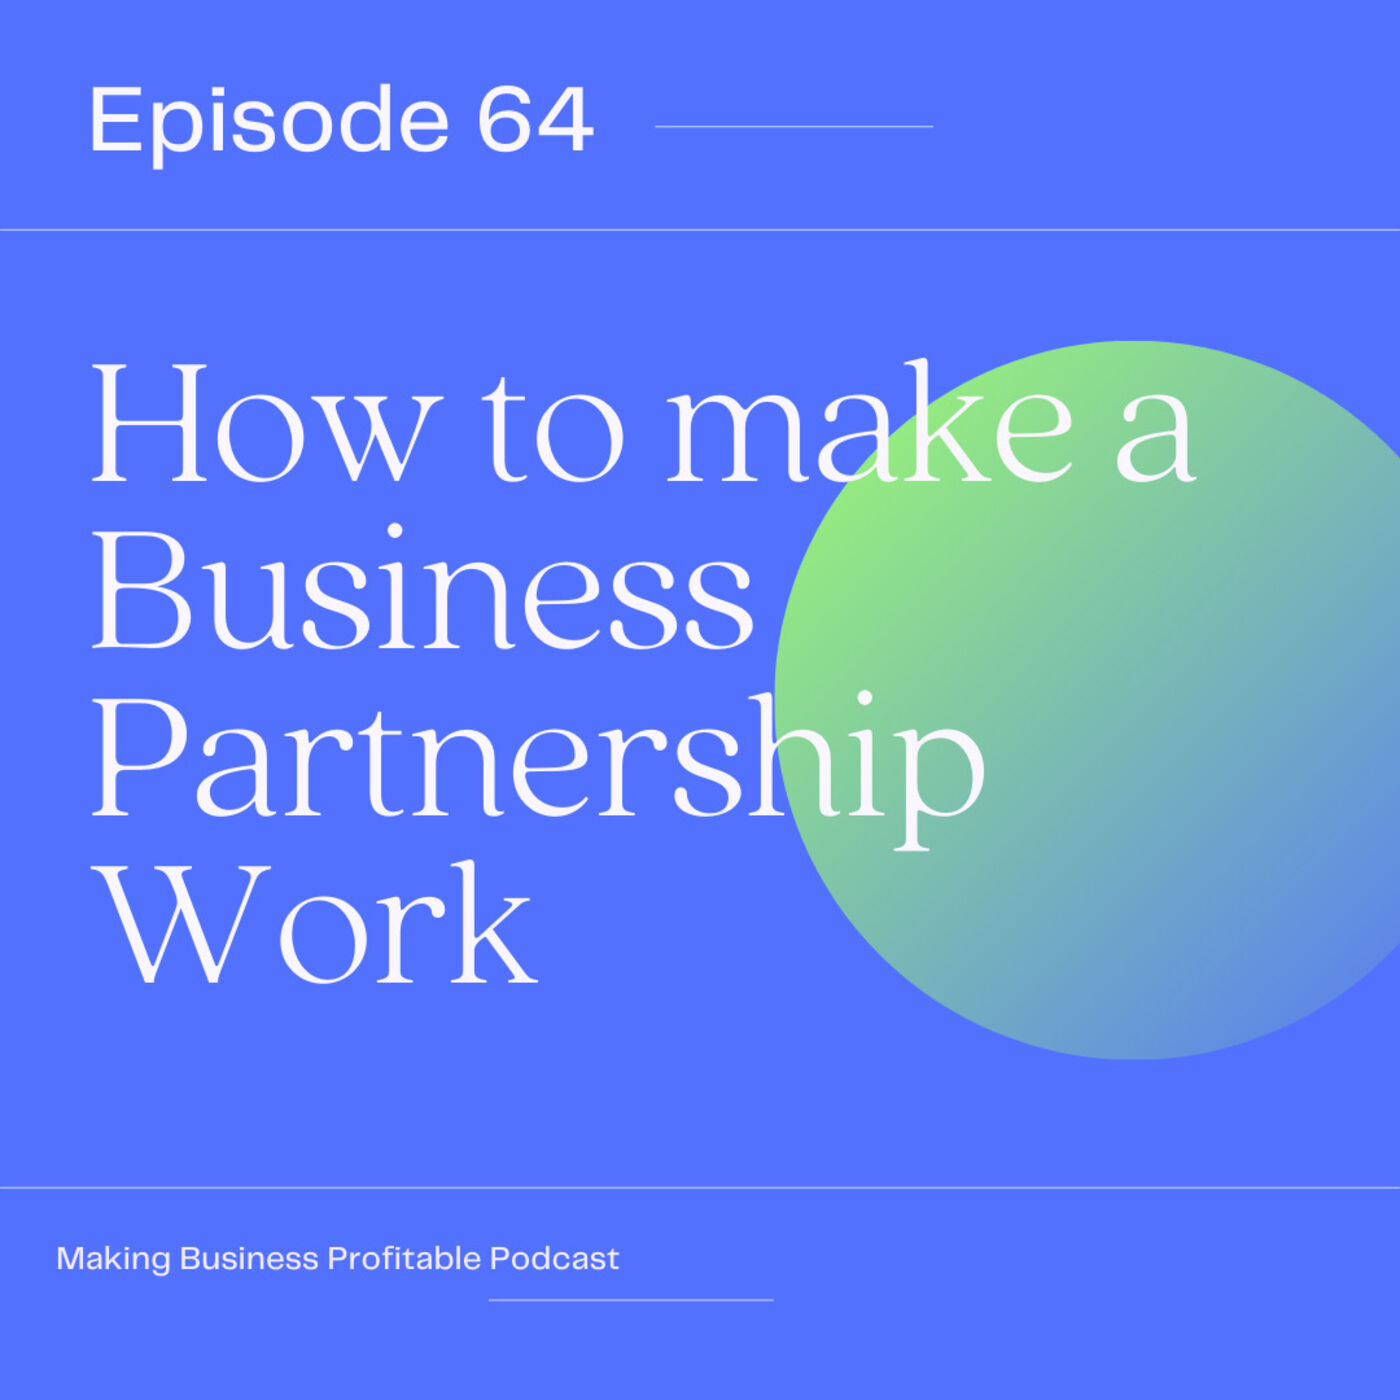 Episode 64 - How to make a Business Partnership Work